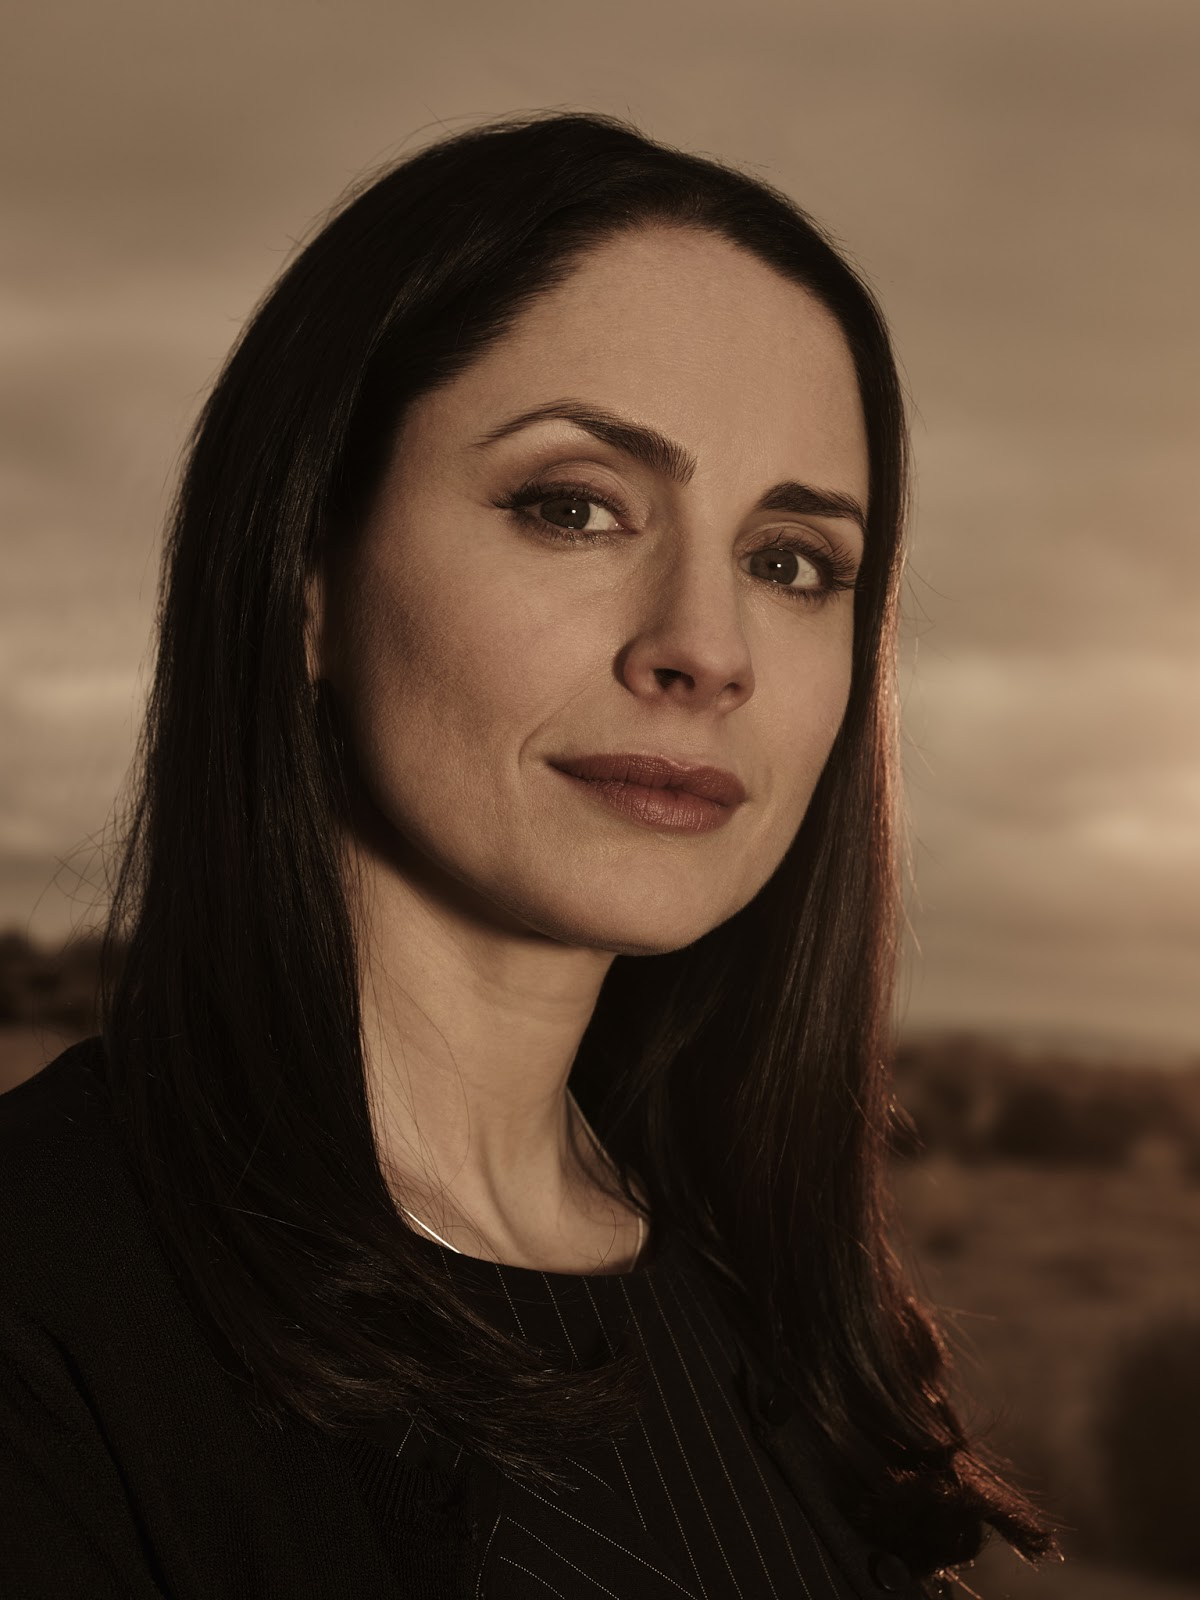 Laura Fraser HQ wallpapers